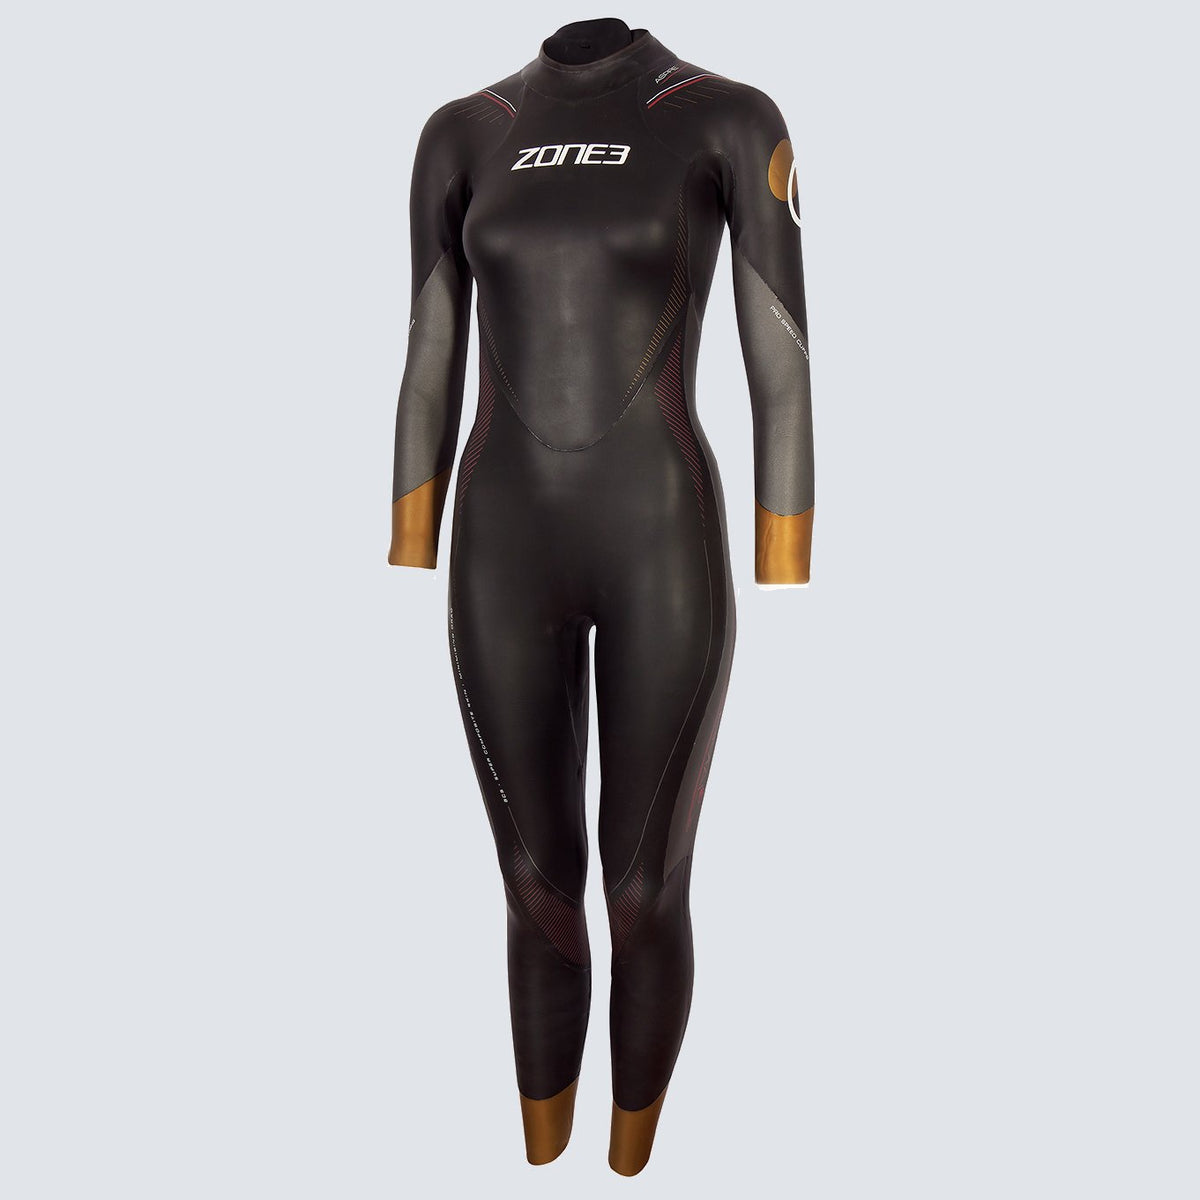 Women's Thermal Aspire Wetsuit